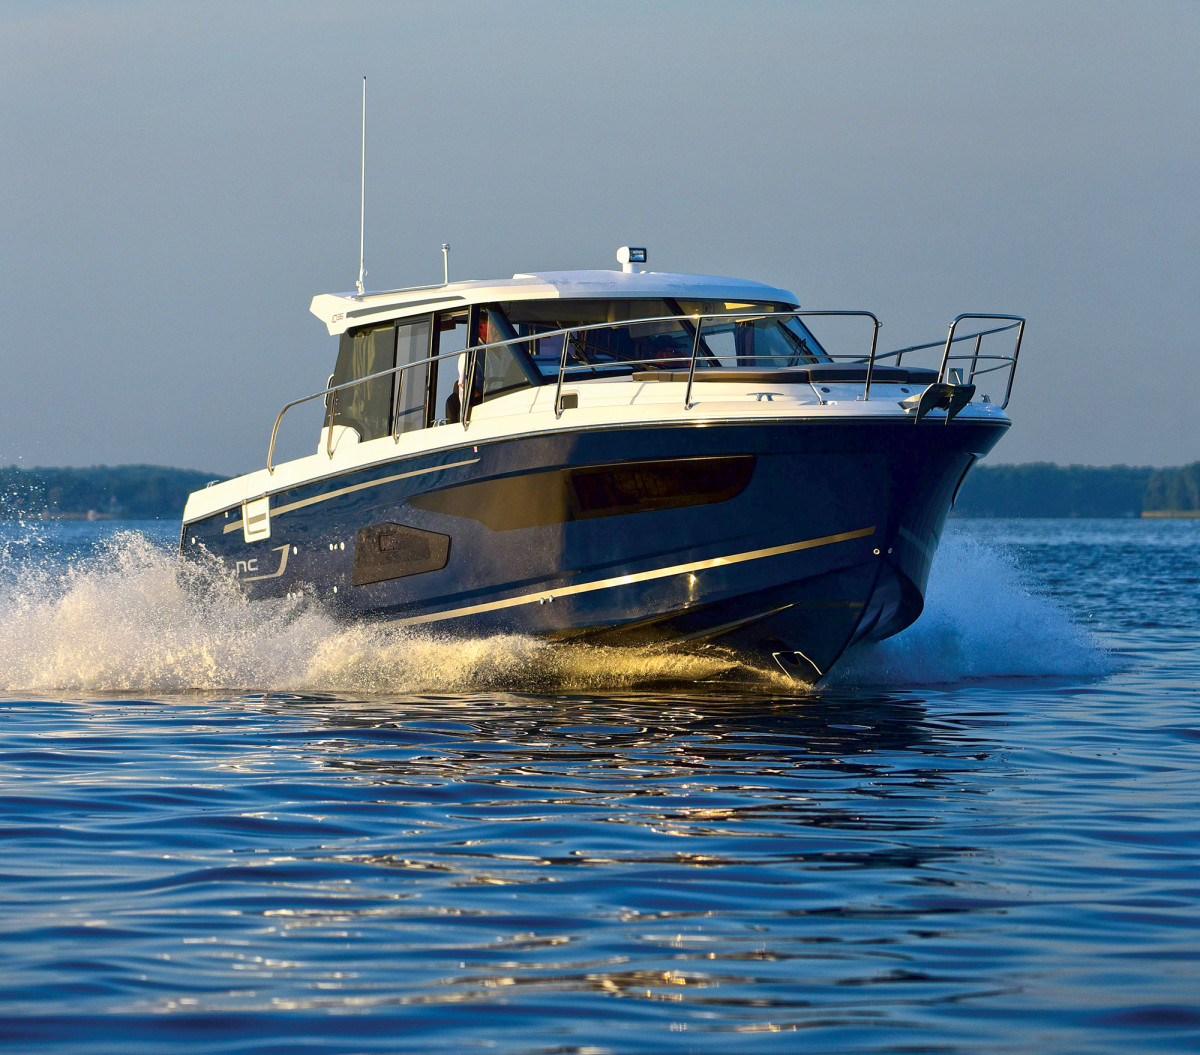 Twin 300-hp Yamaha outboards propel the NC 1095 to a top hop of 37 knots.